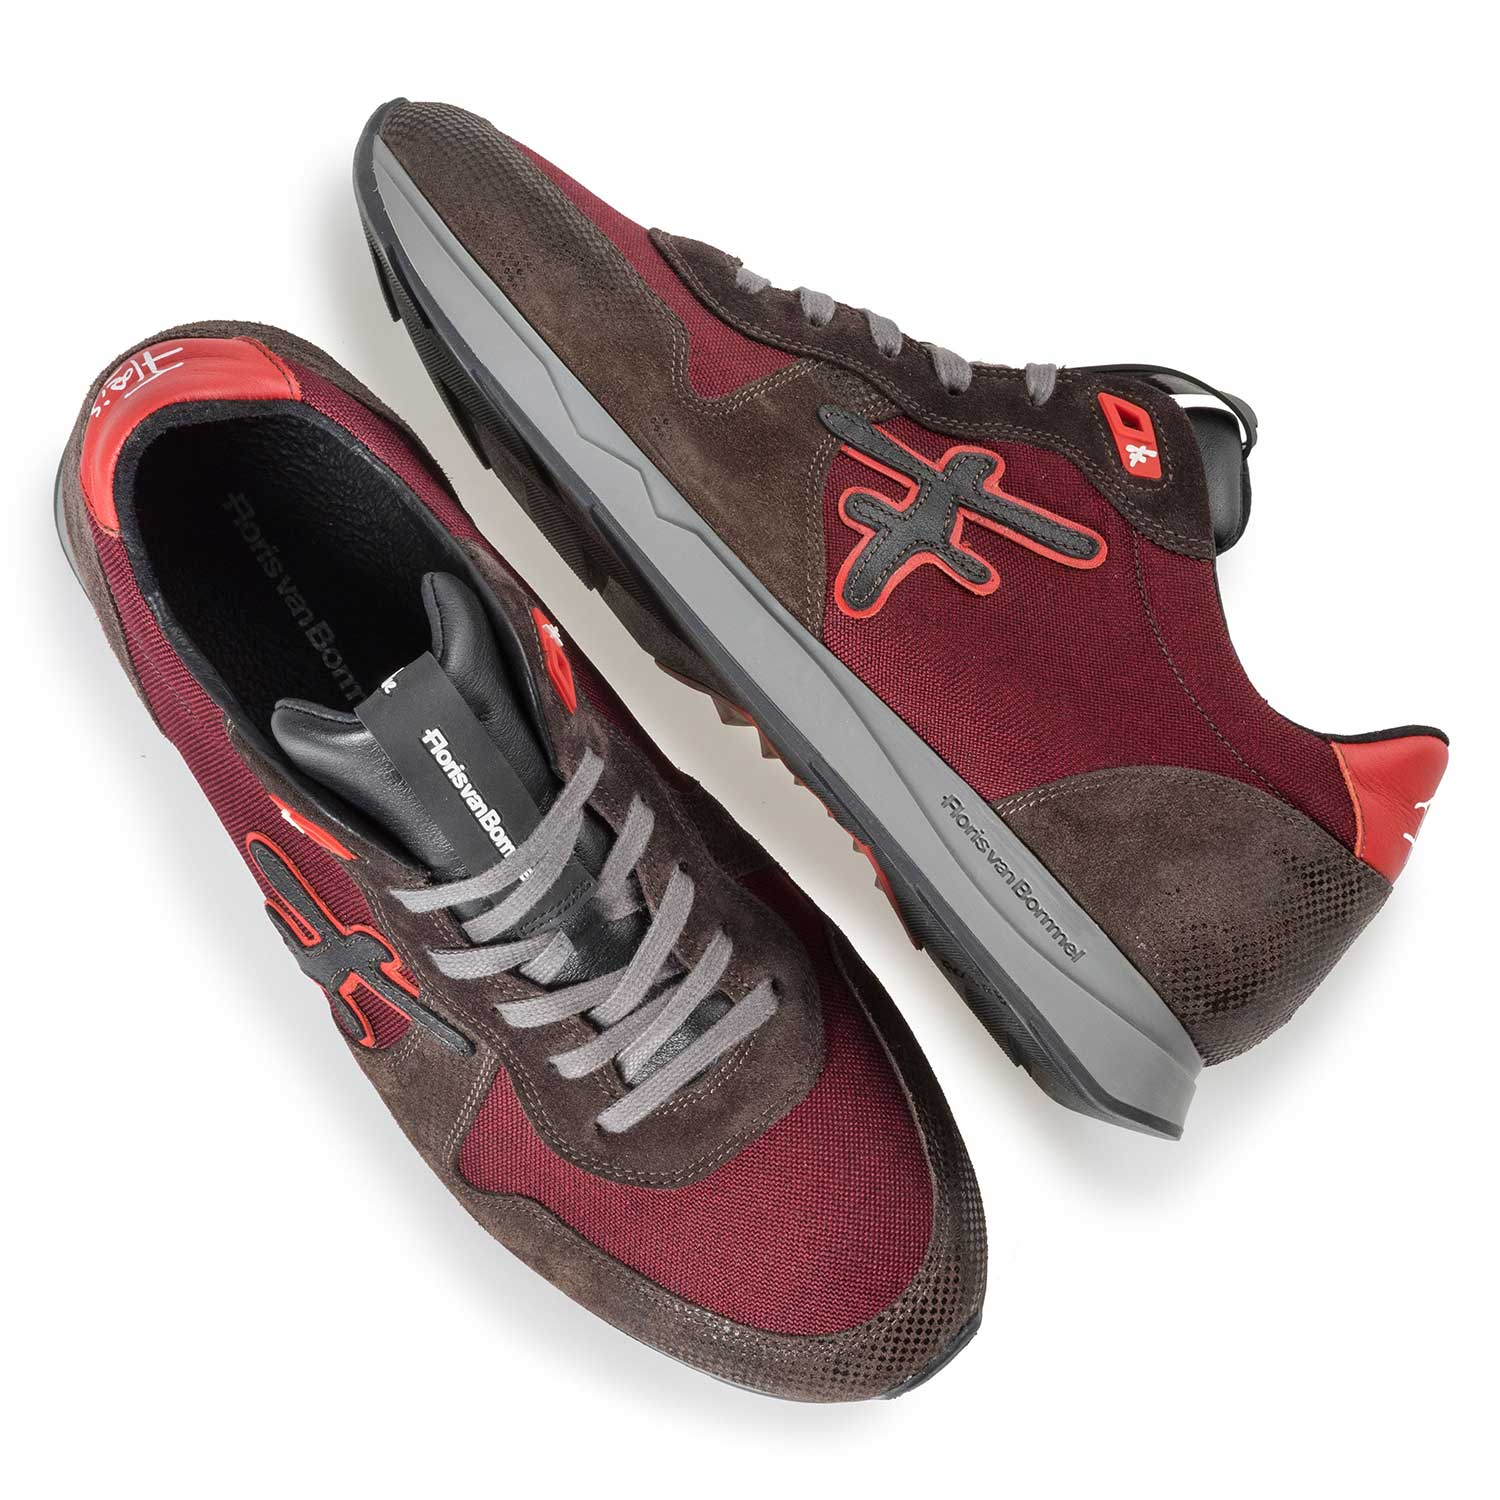 16226/00 - Leather sneaker with dark red canvas